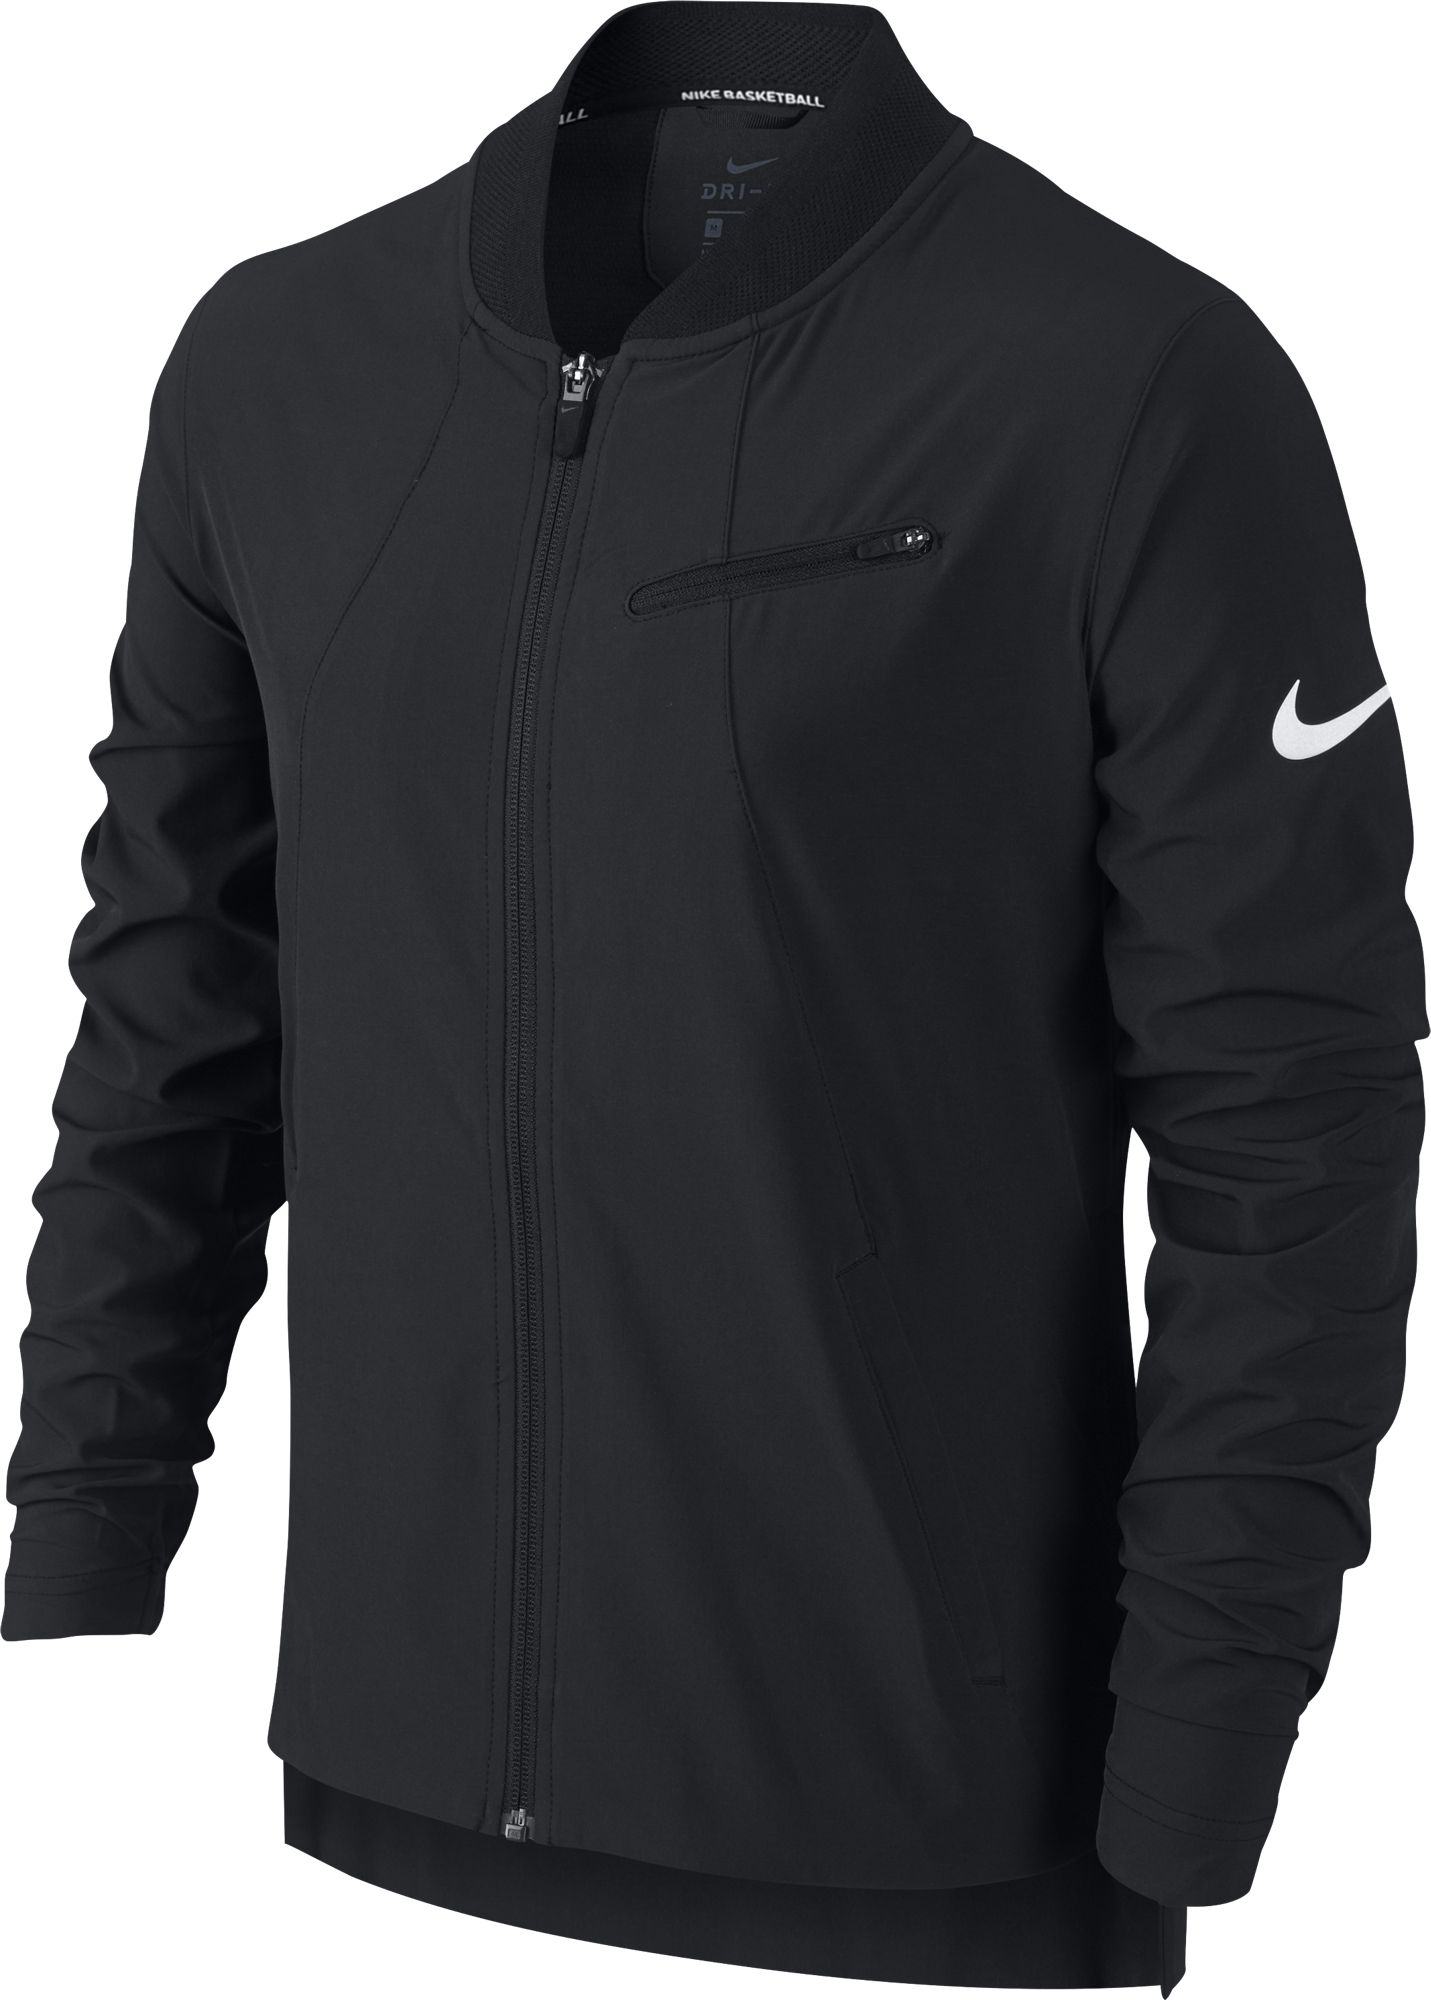 Nike Womens Basketball Jacket - NK-864714-010